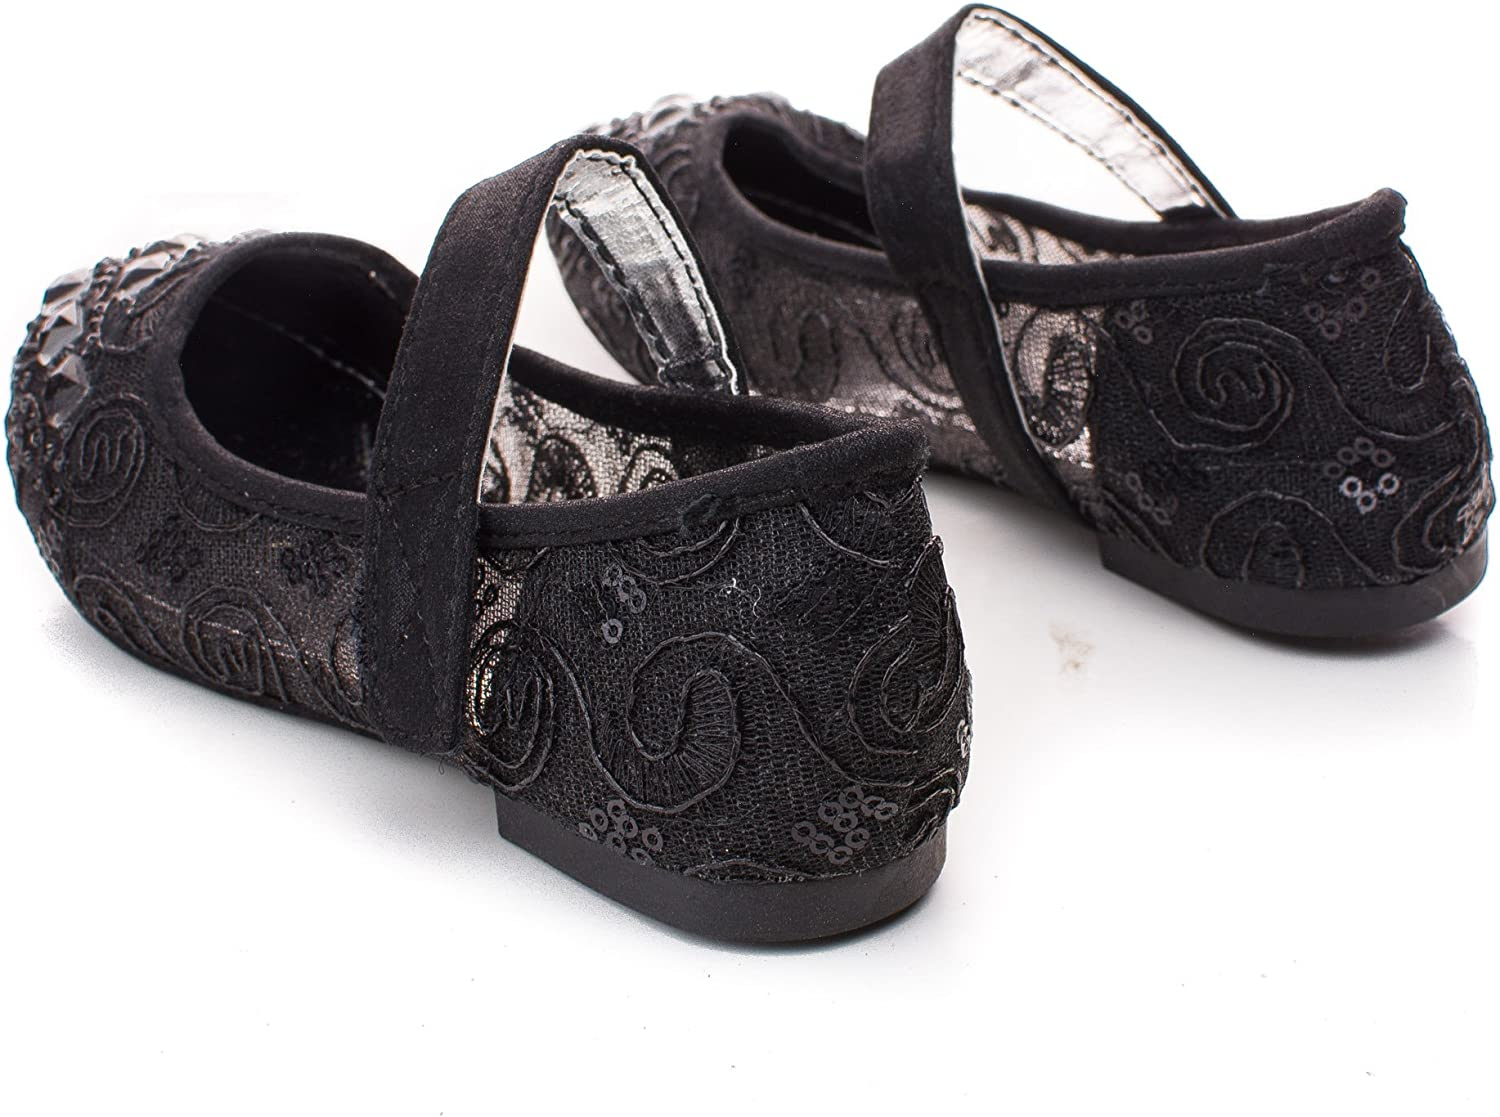 Childrens Girl Rhinestone /& Sequins Embroidered Mary Jane Flats